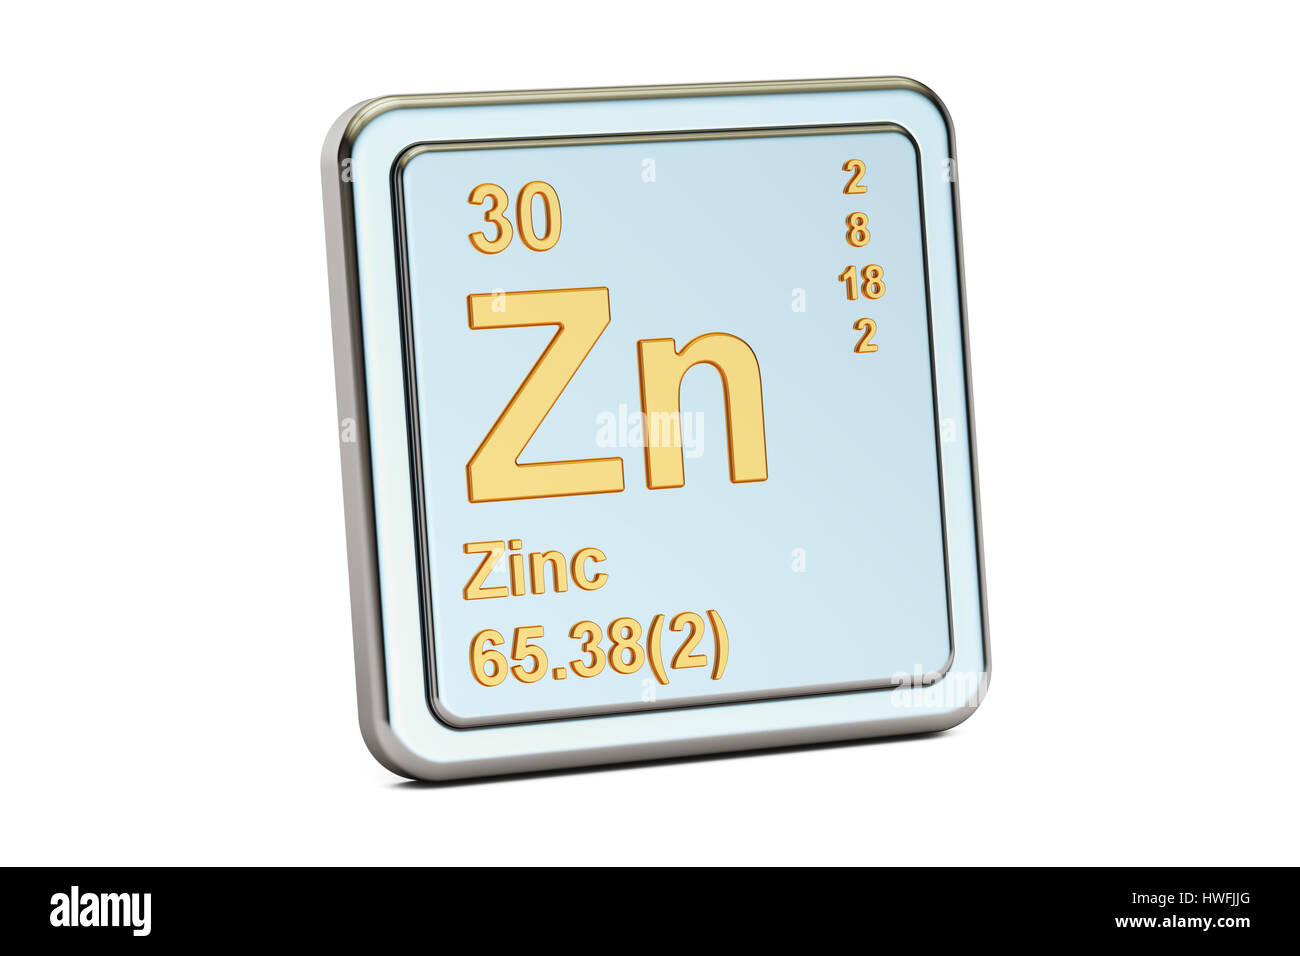 Zinc zn chemical element sign 3d rendering isolated on white stock zinc zn chemical element sign 3d rendering isolated on white background buycottarizona Gallery